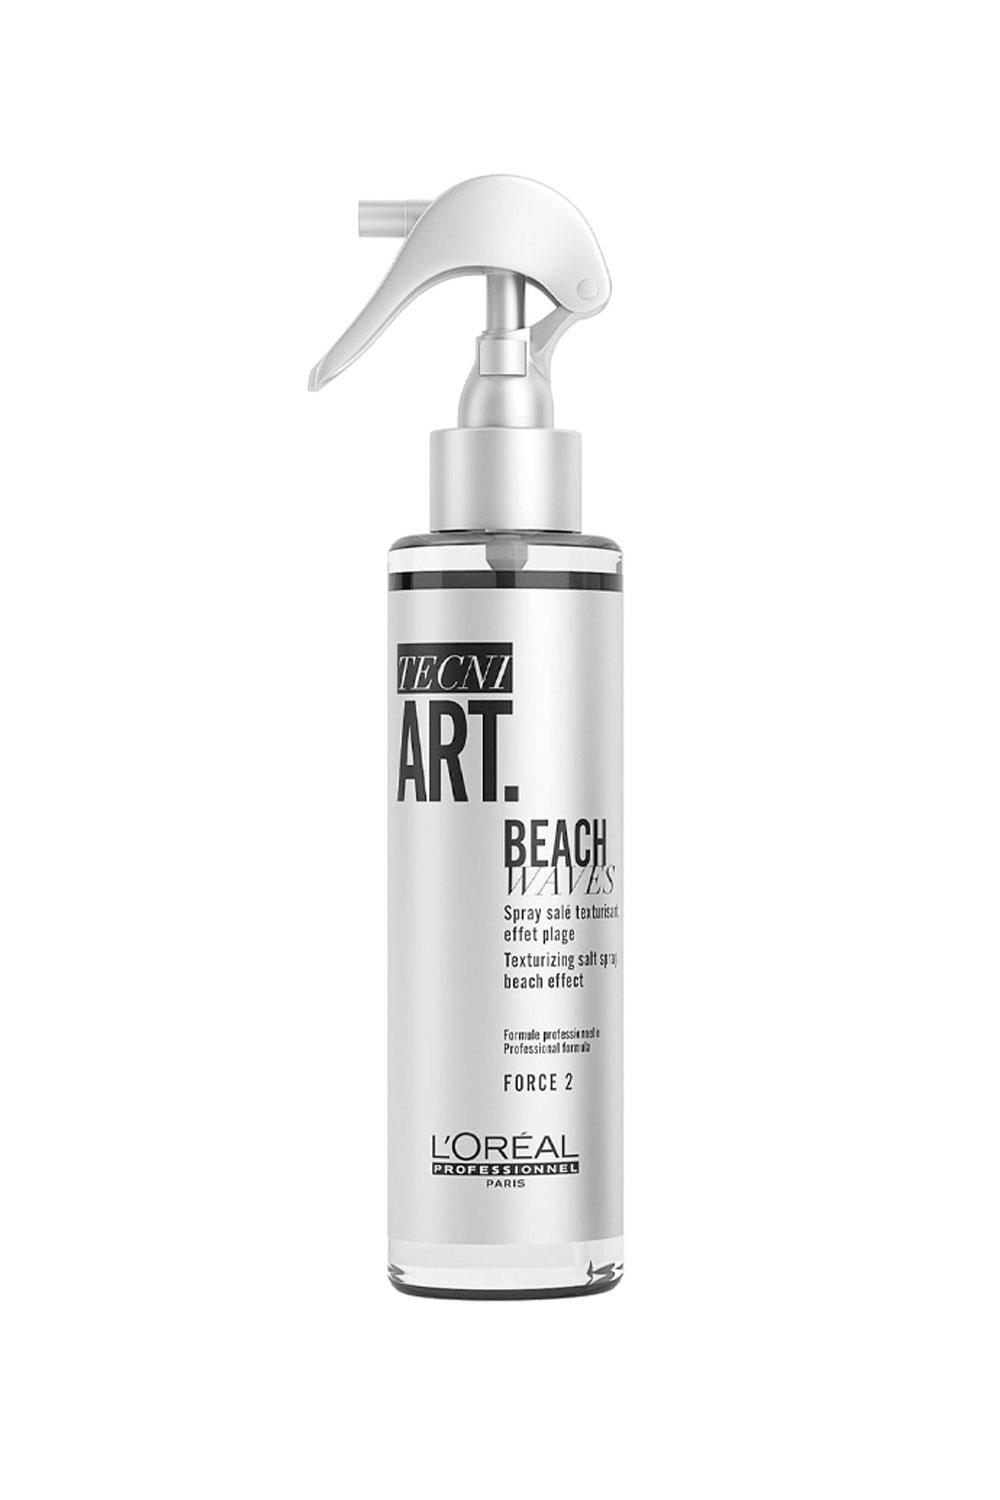 spray sal Tecni Art beach waves de L'Oréal Professionnel, 9,24€